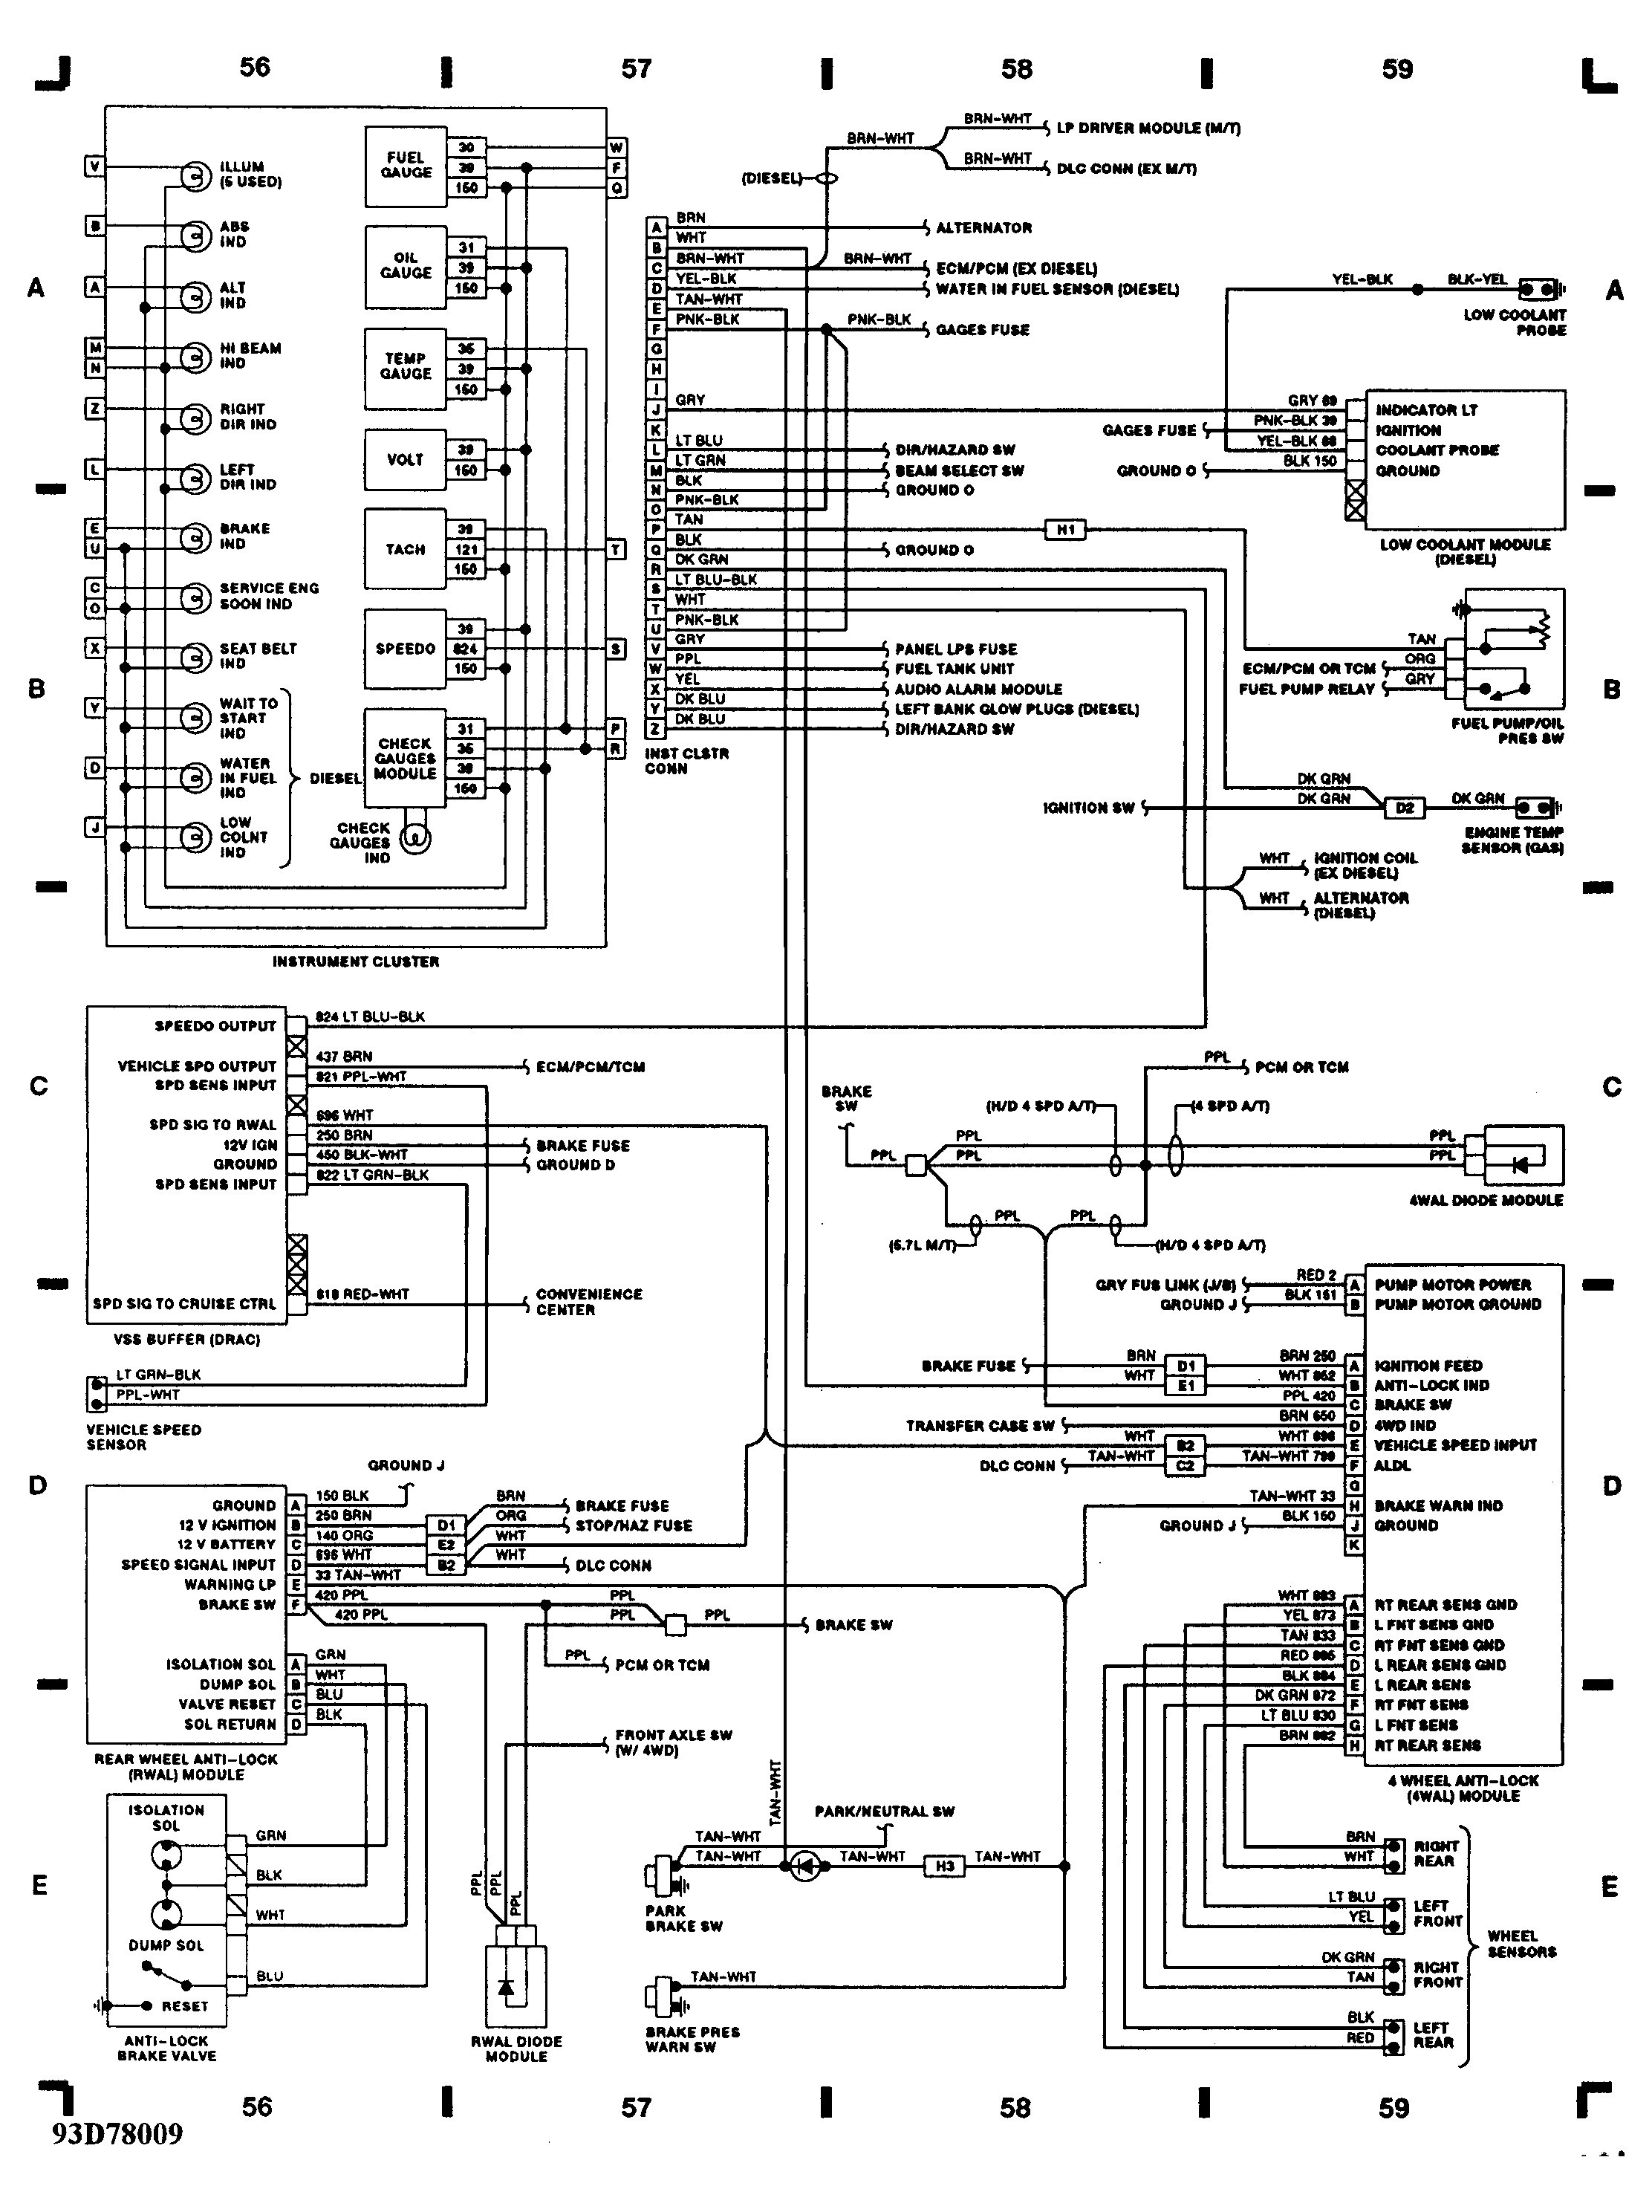 File  1997 Chevy S10 Pickup Wiring Diagram